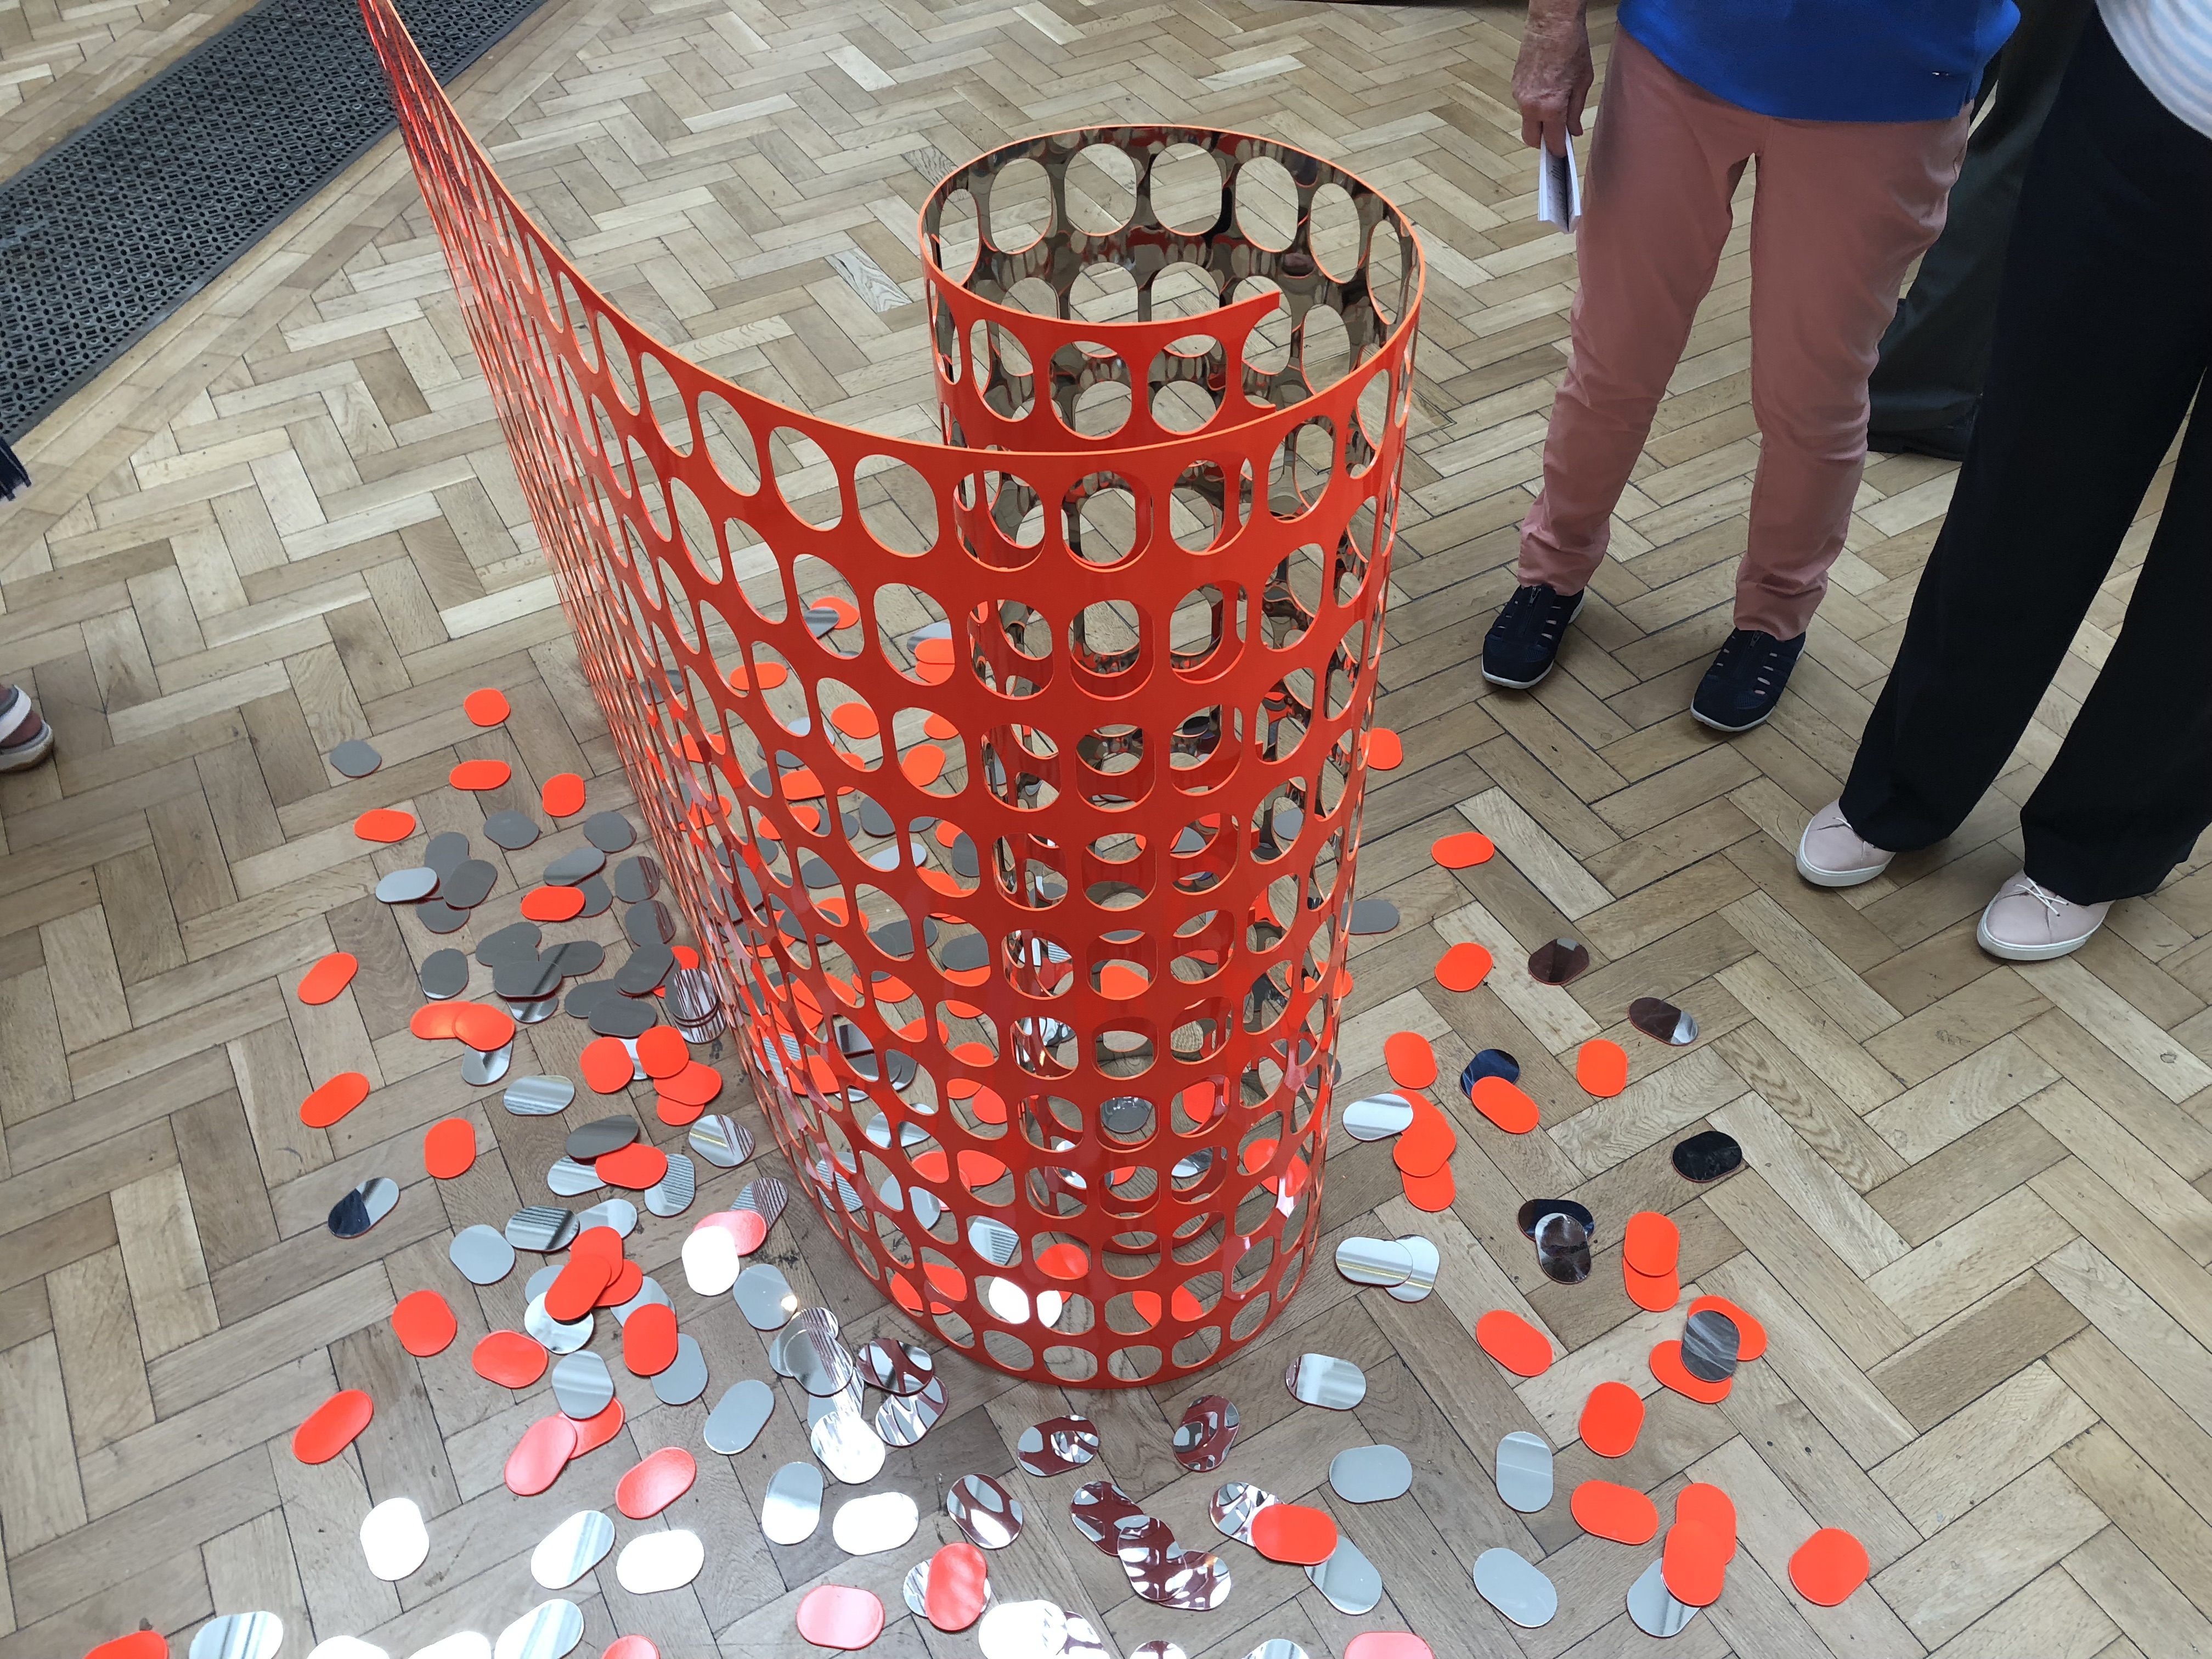 Temporary Fence by Graham Guy-Robinson orange artwork with reflective surfaces